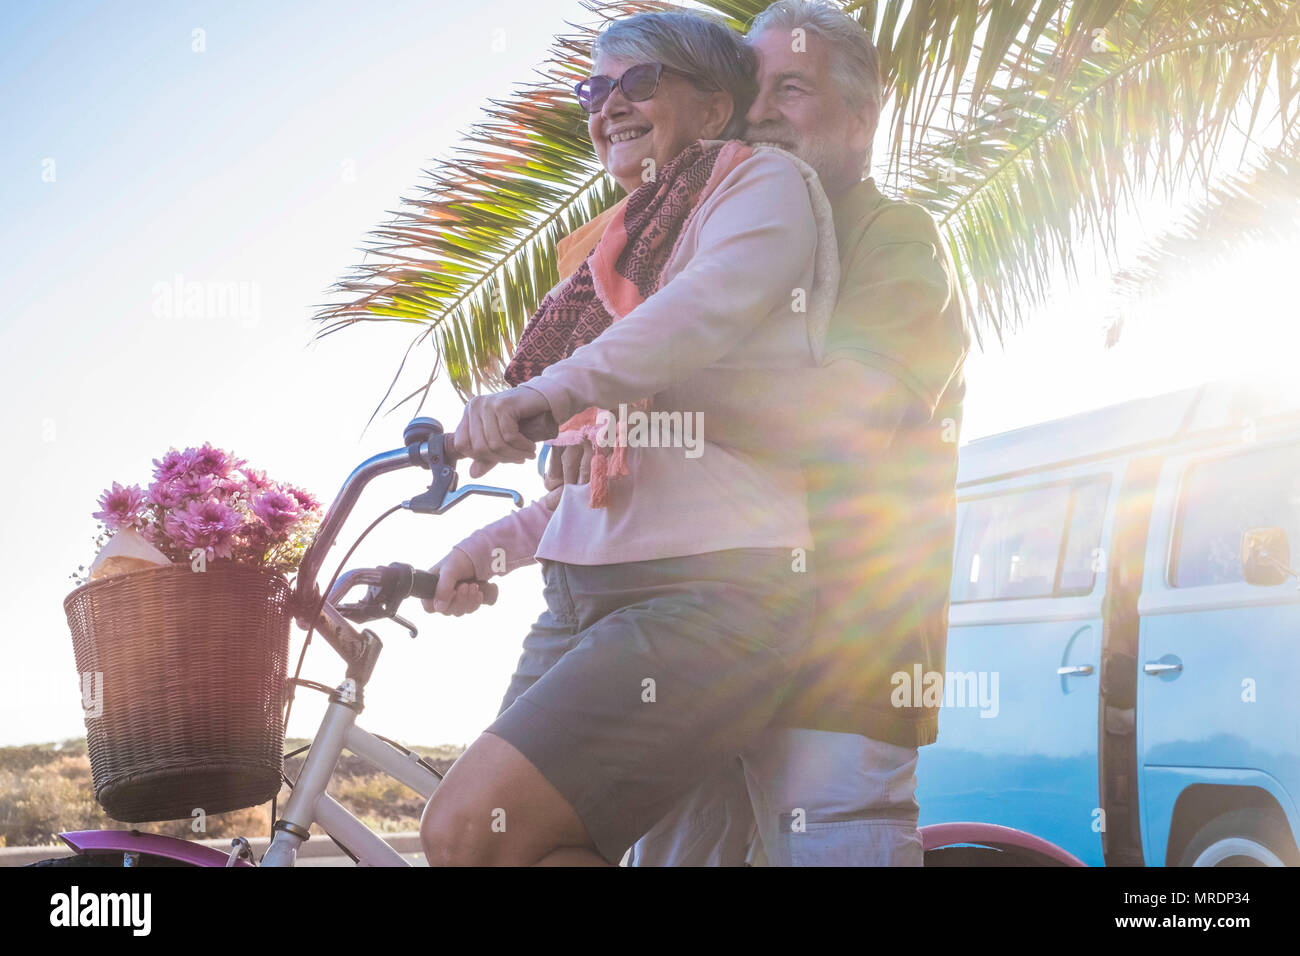 nice beautiful couple of seniors grandfathers going together on a bicycle outdoor in a tropical place. old vintage blue van in the background. happine Stock Photo